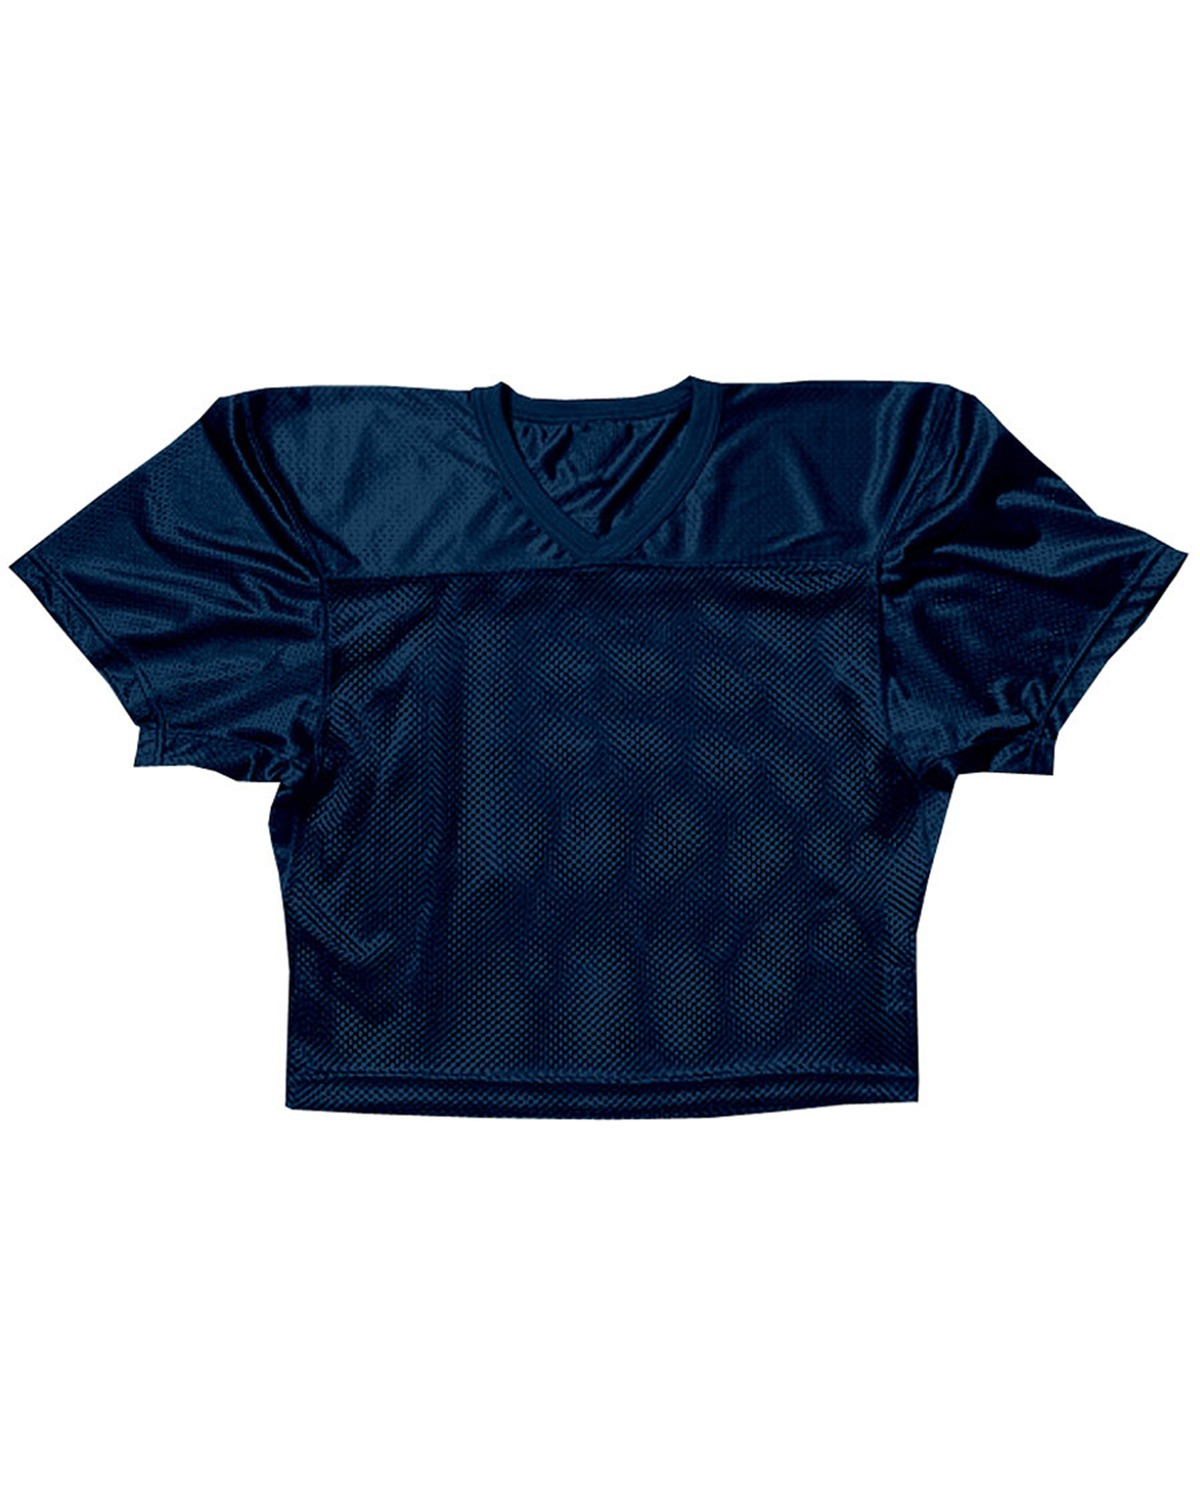 A4 Drop Ship - N4139 Adult Football Practice Jersey